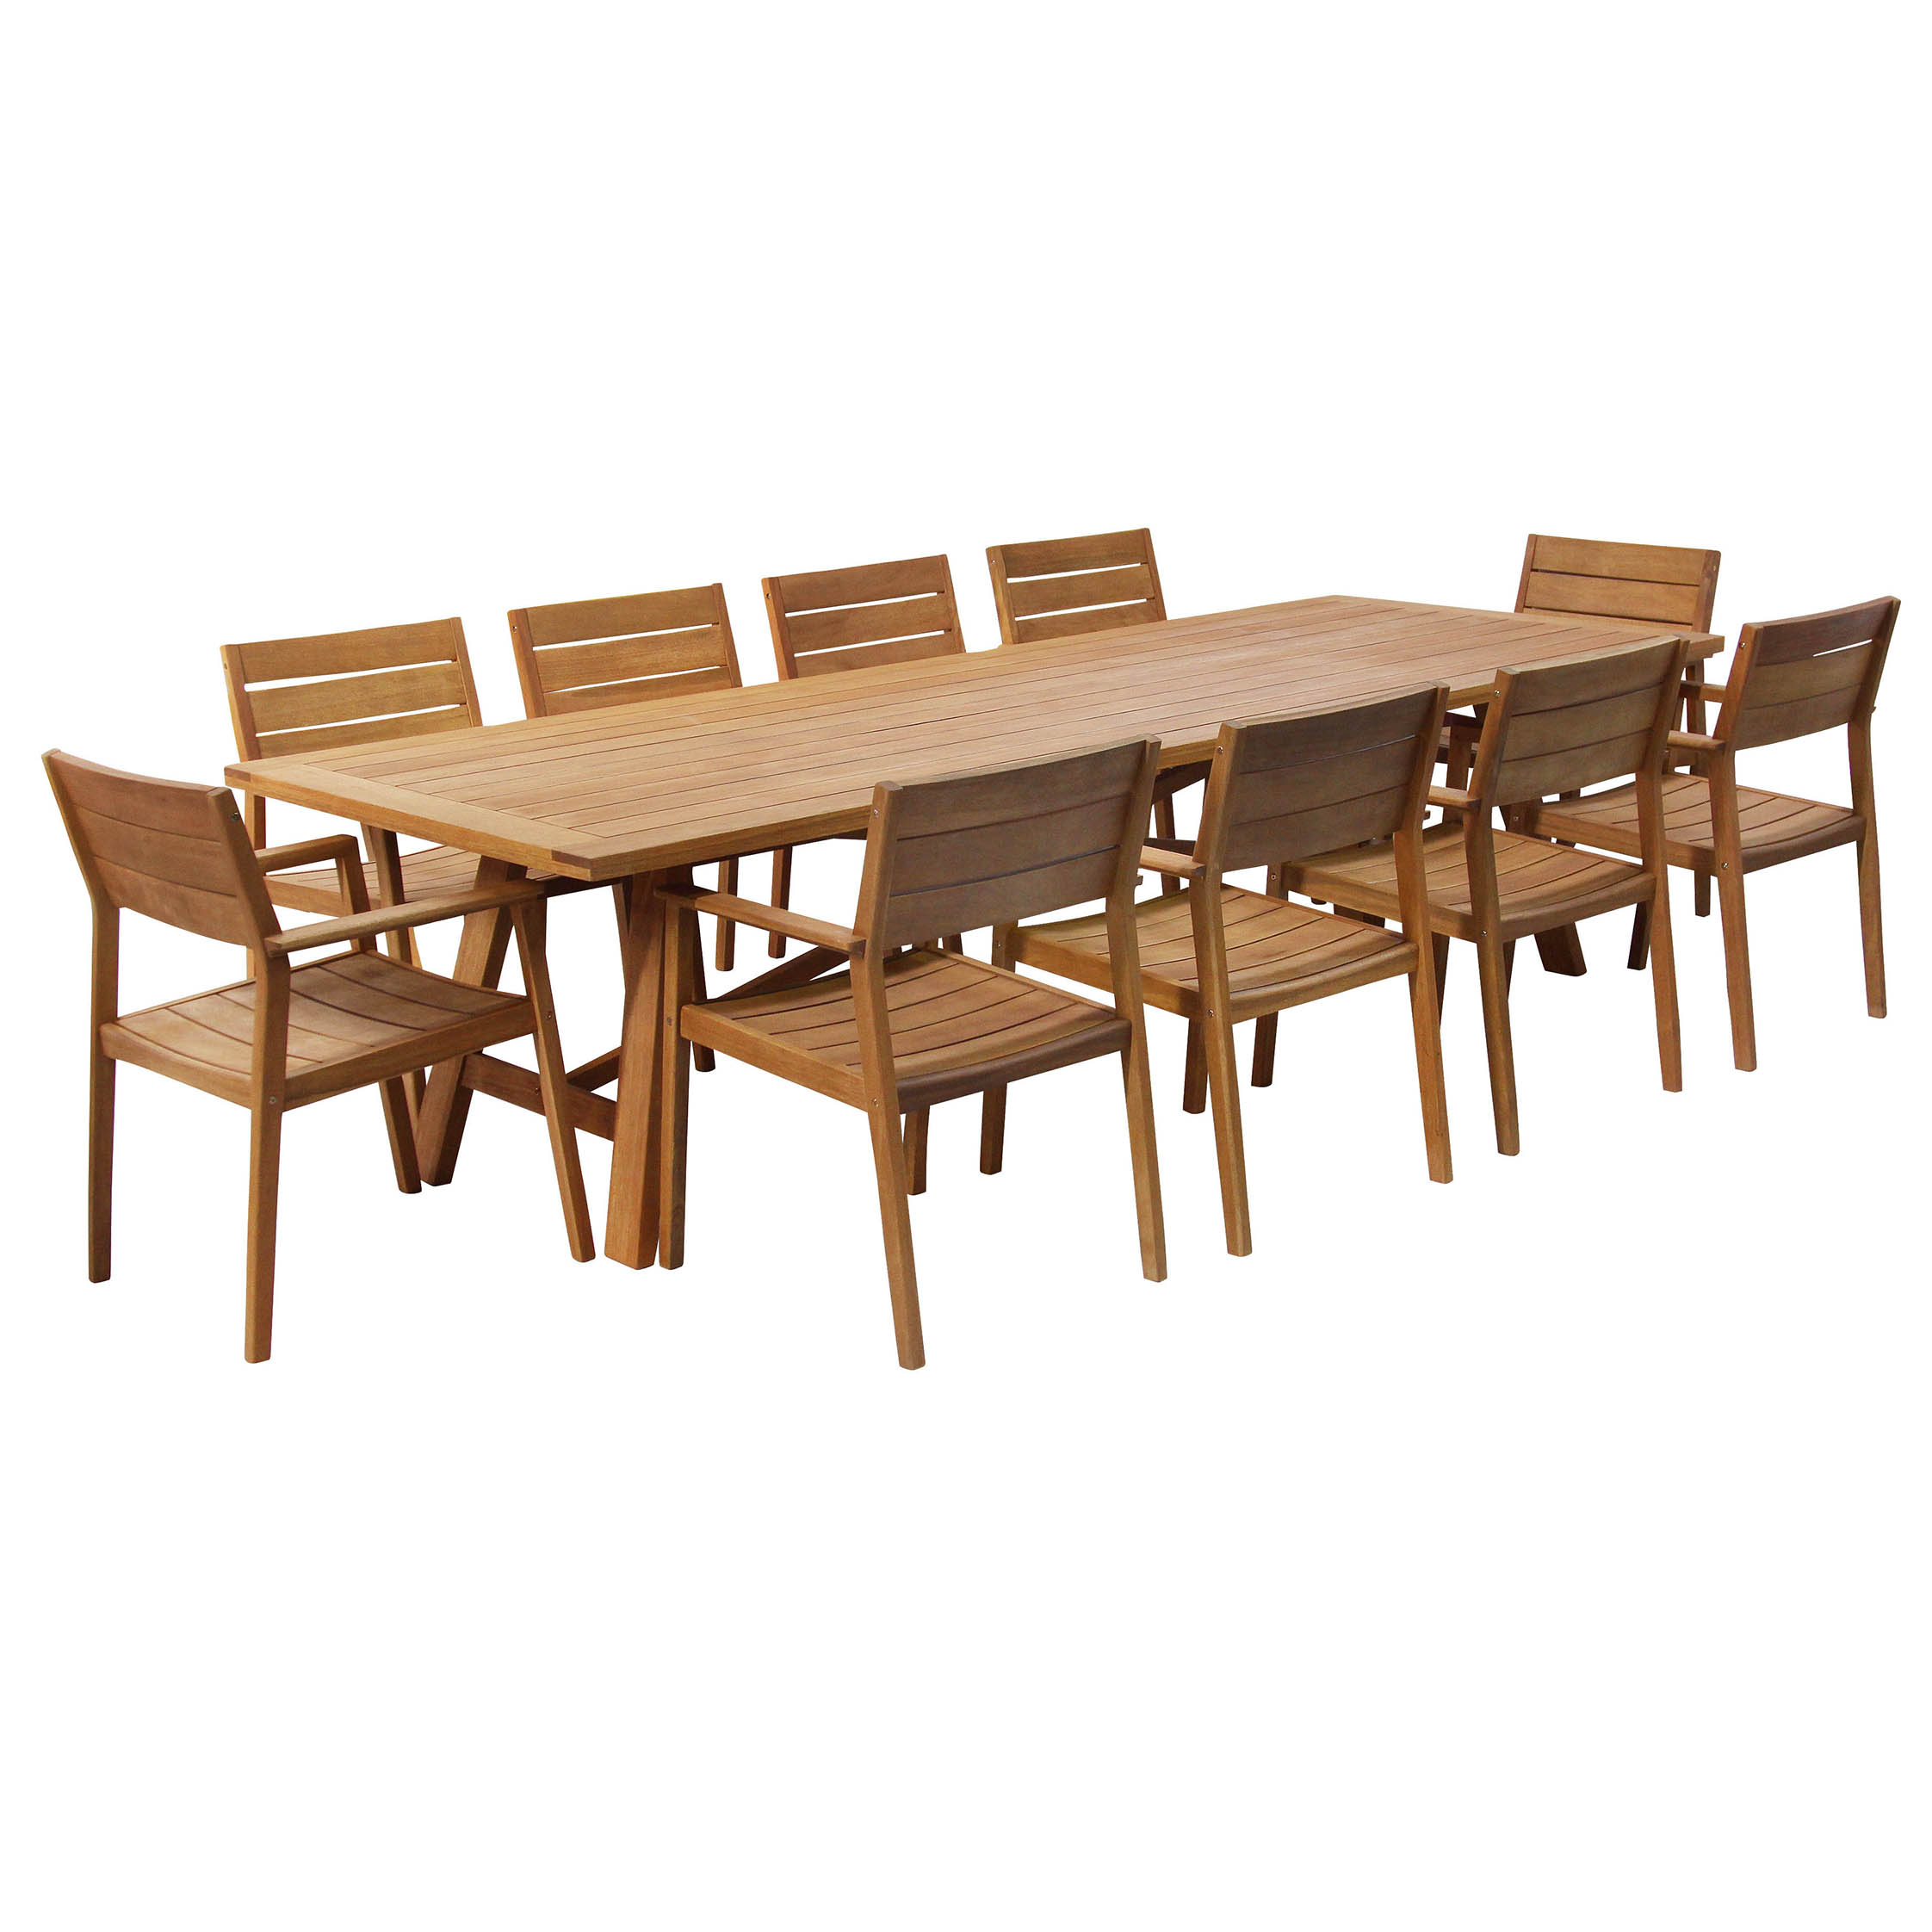 Cacey 10 seater Wooden